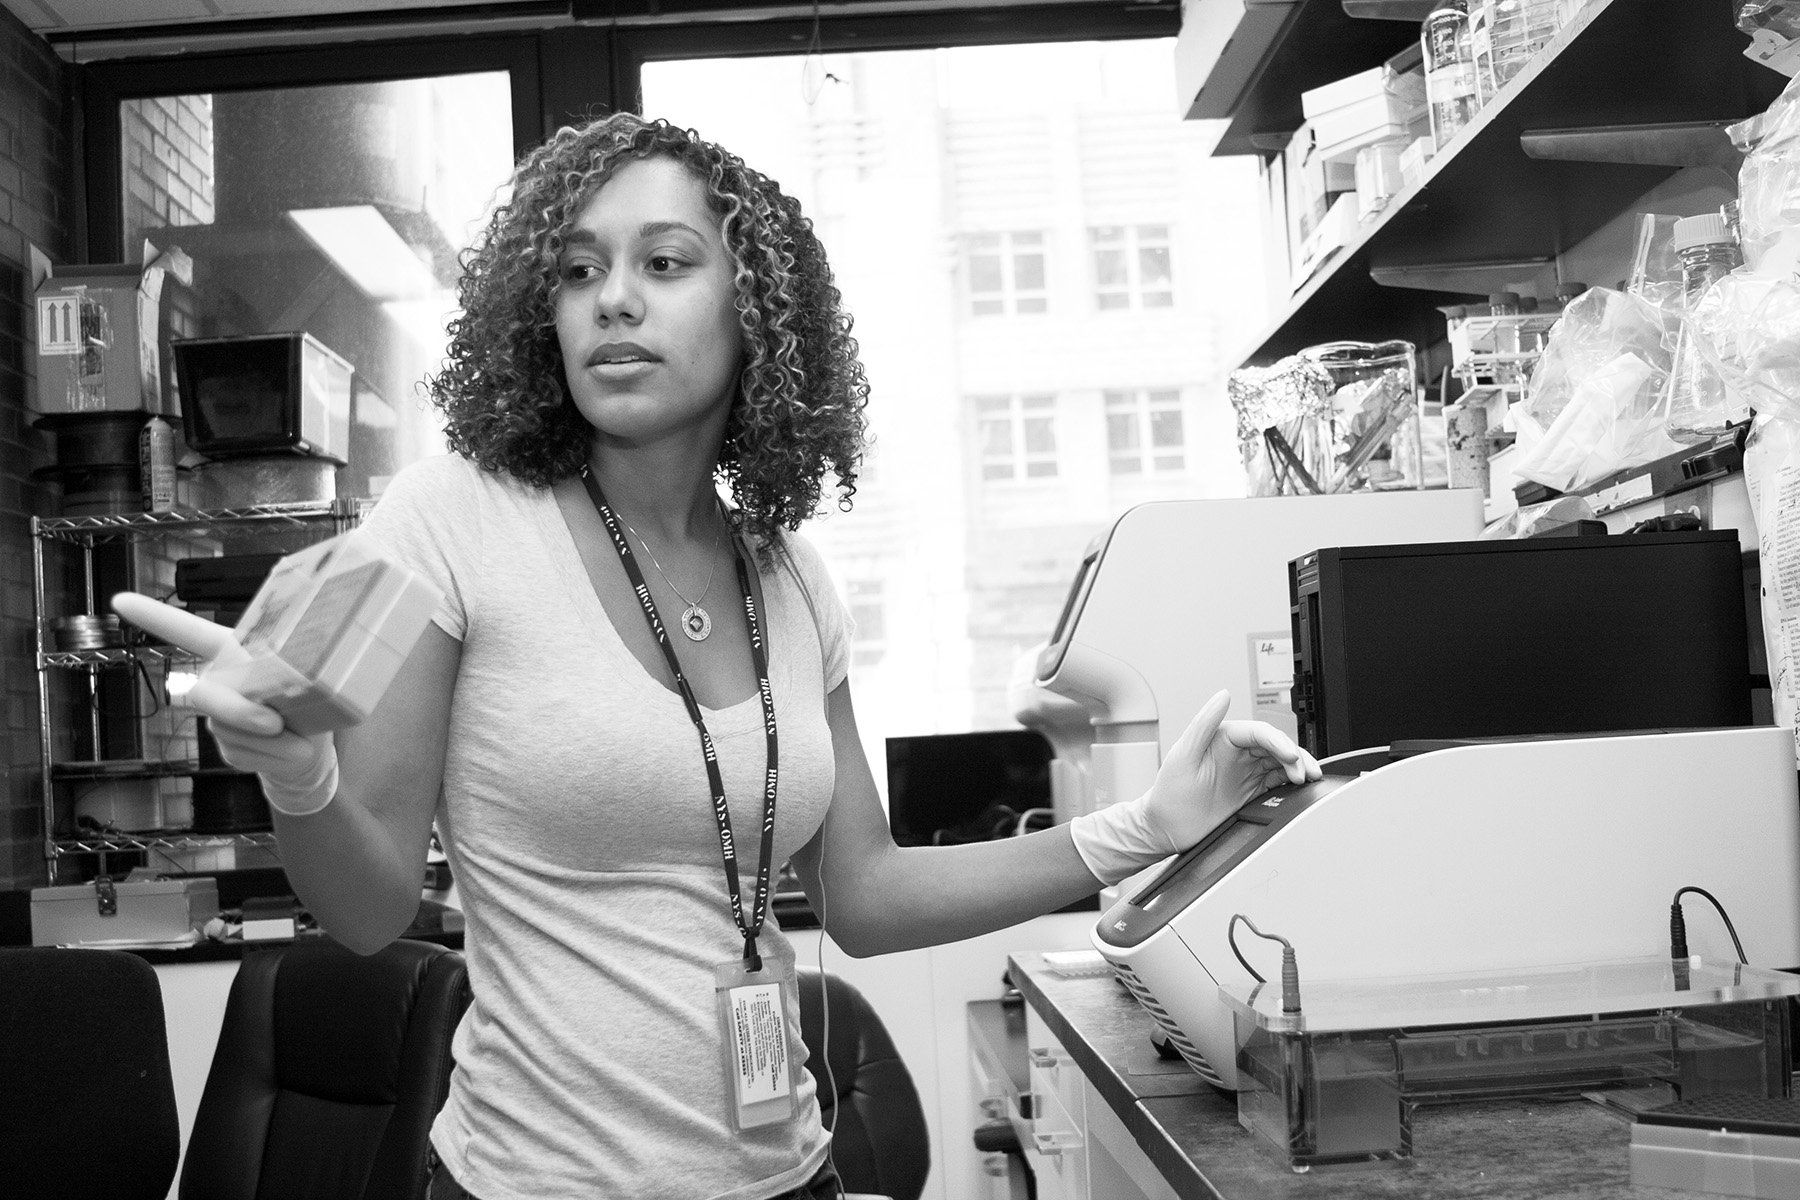 Tabia has placed her tissue samples in a PCR (polymerase chain reaction) machine (aka a thermal cycler), which allows her to find and amplify what markers are present in the DNA sample.